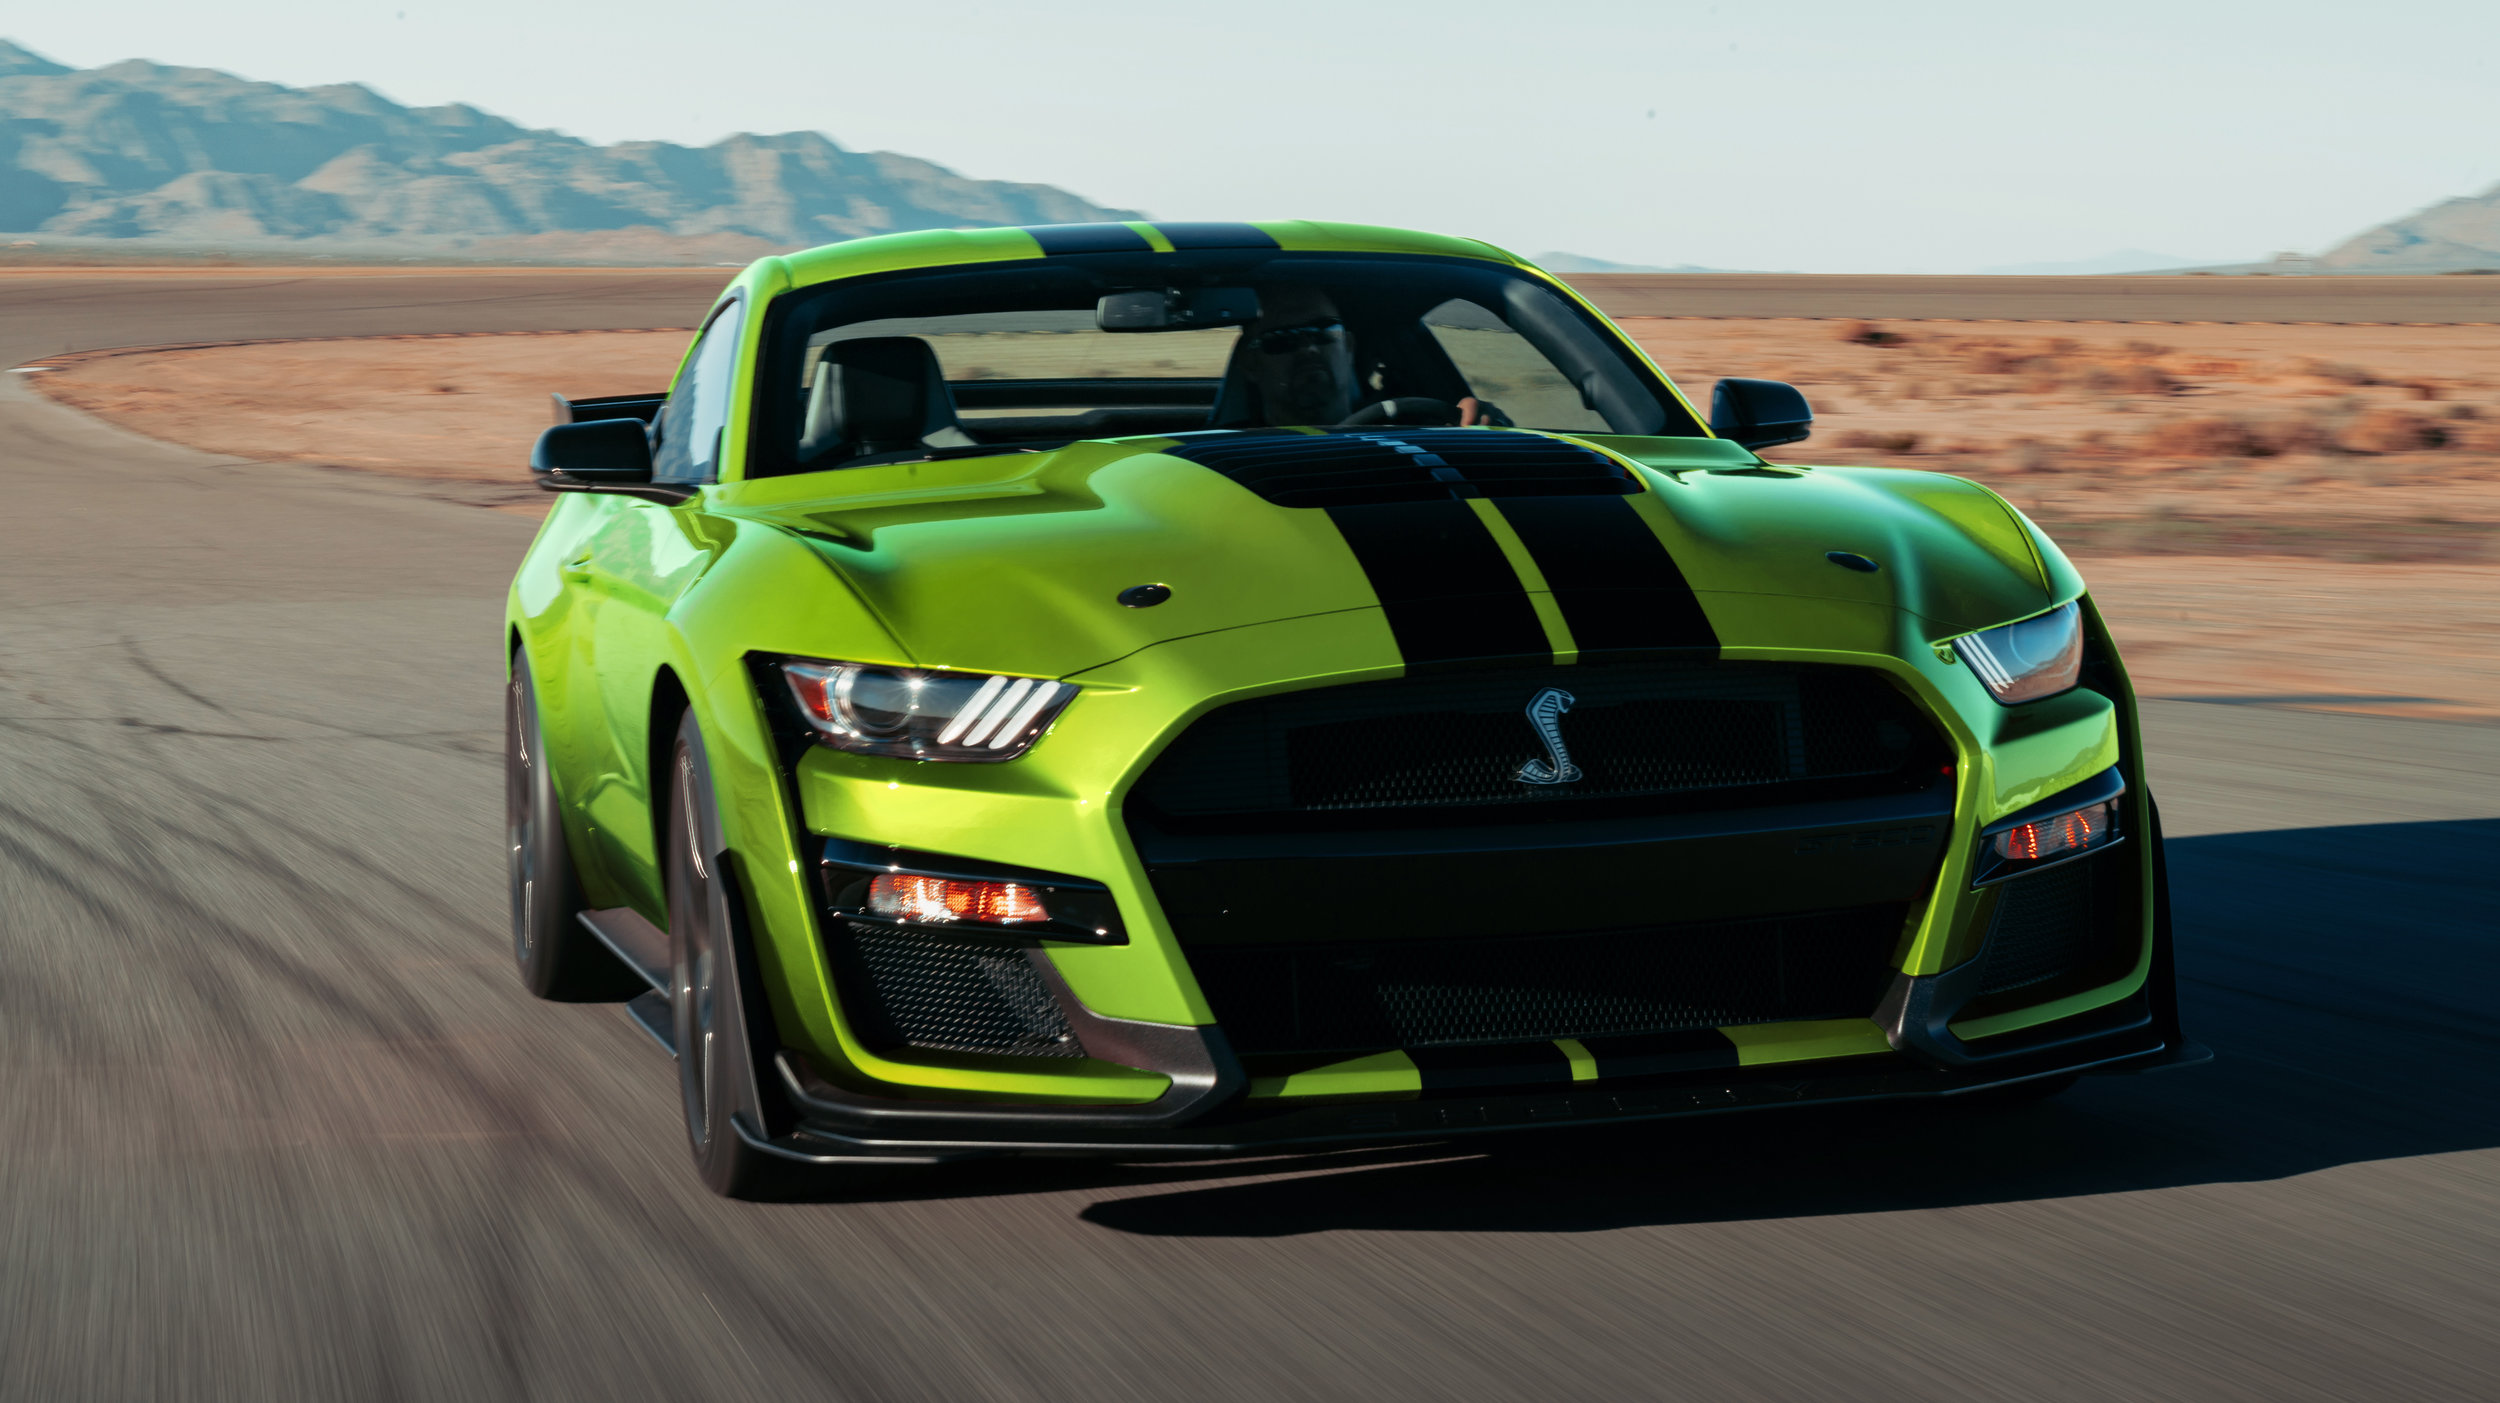 2020-ford-mustang-shelby-gt500-supercharged.jpg